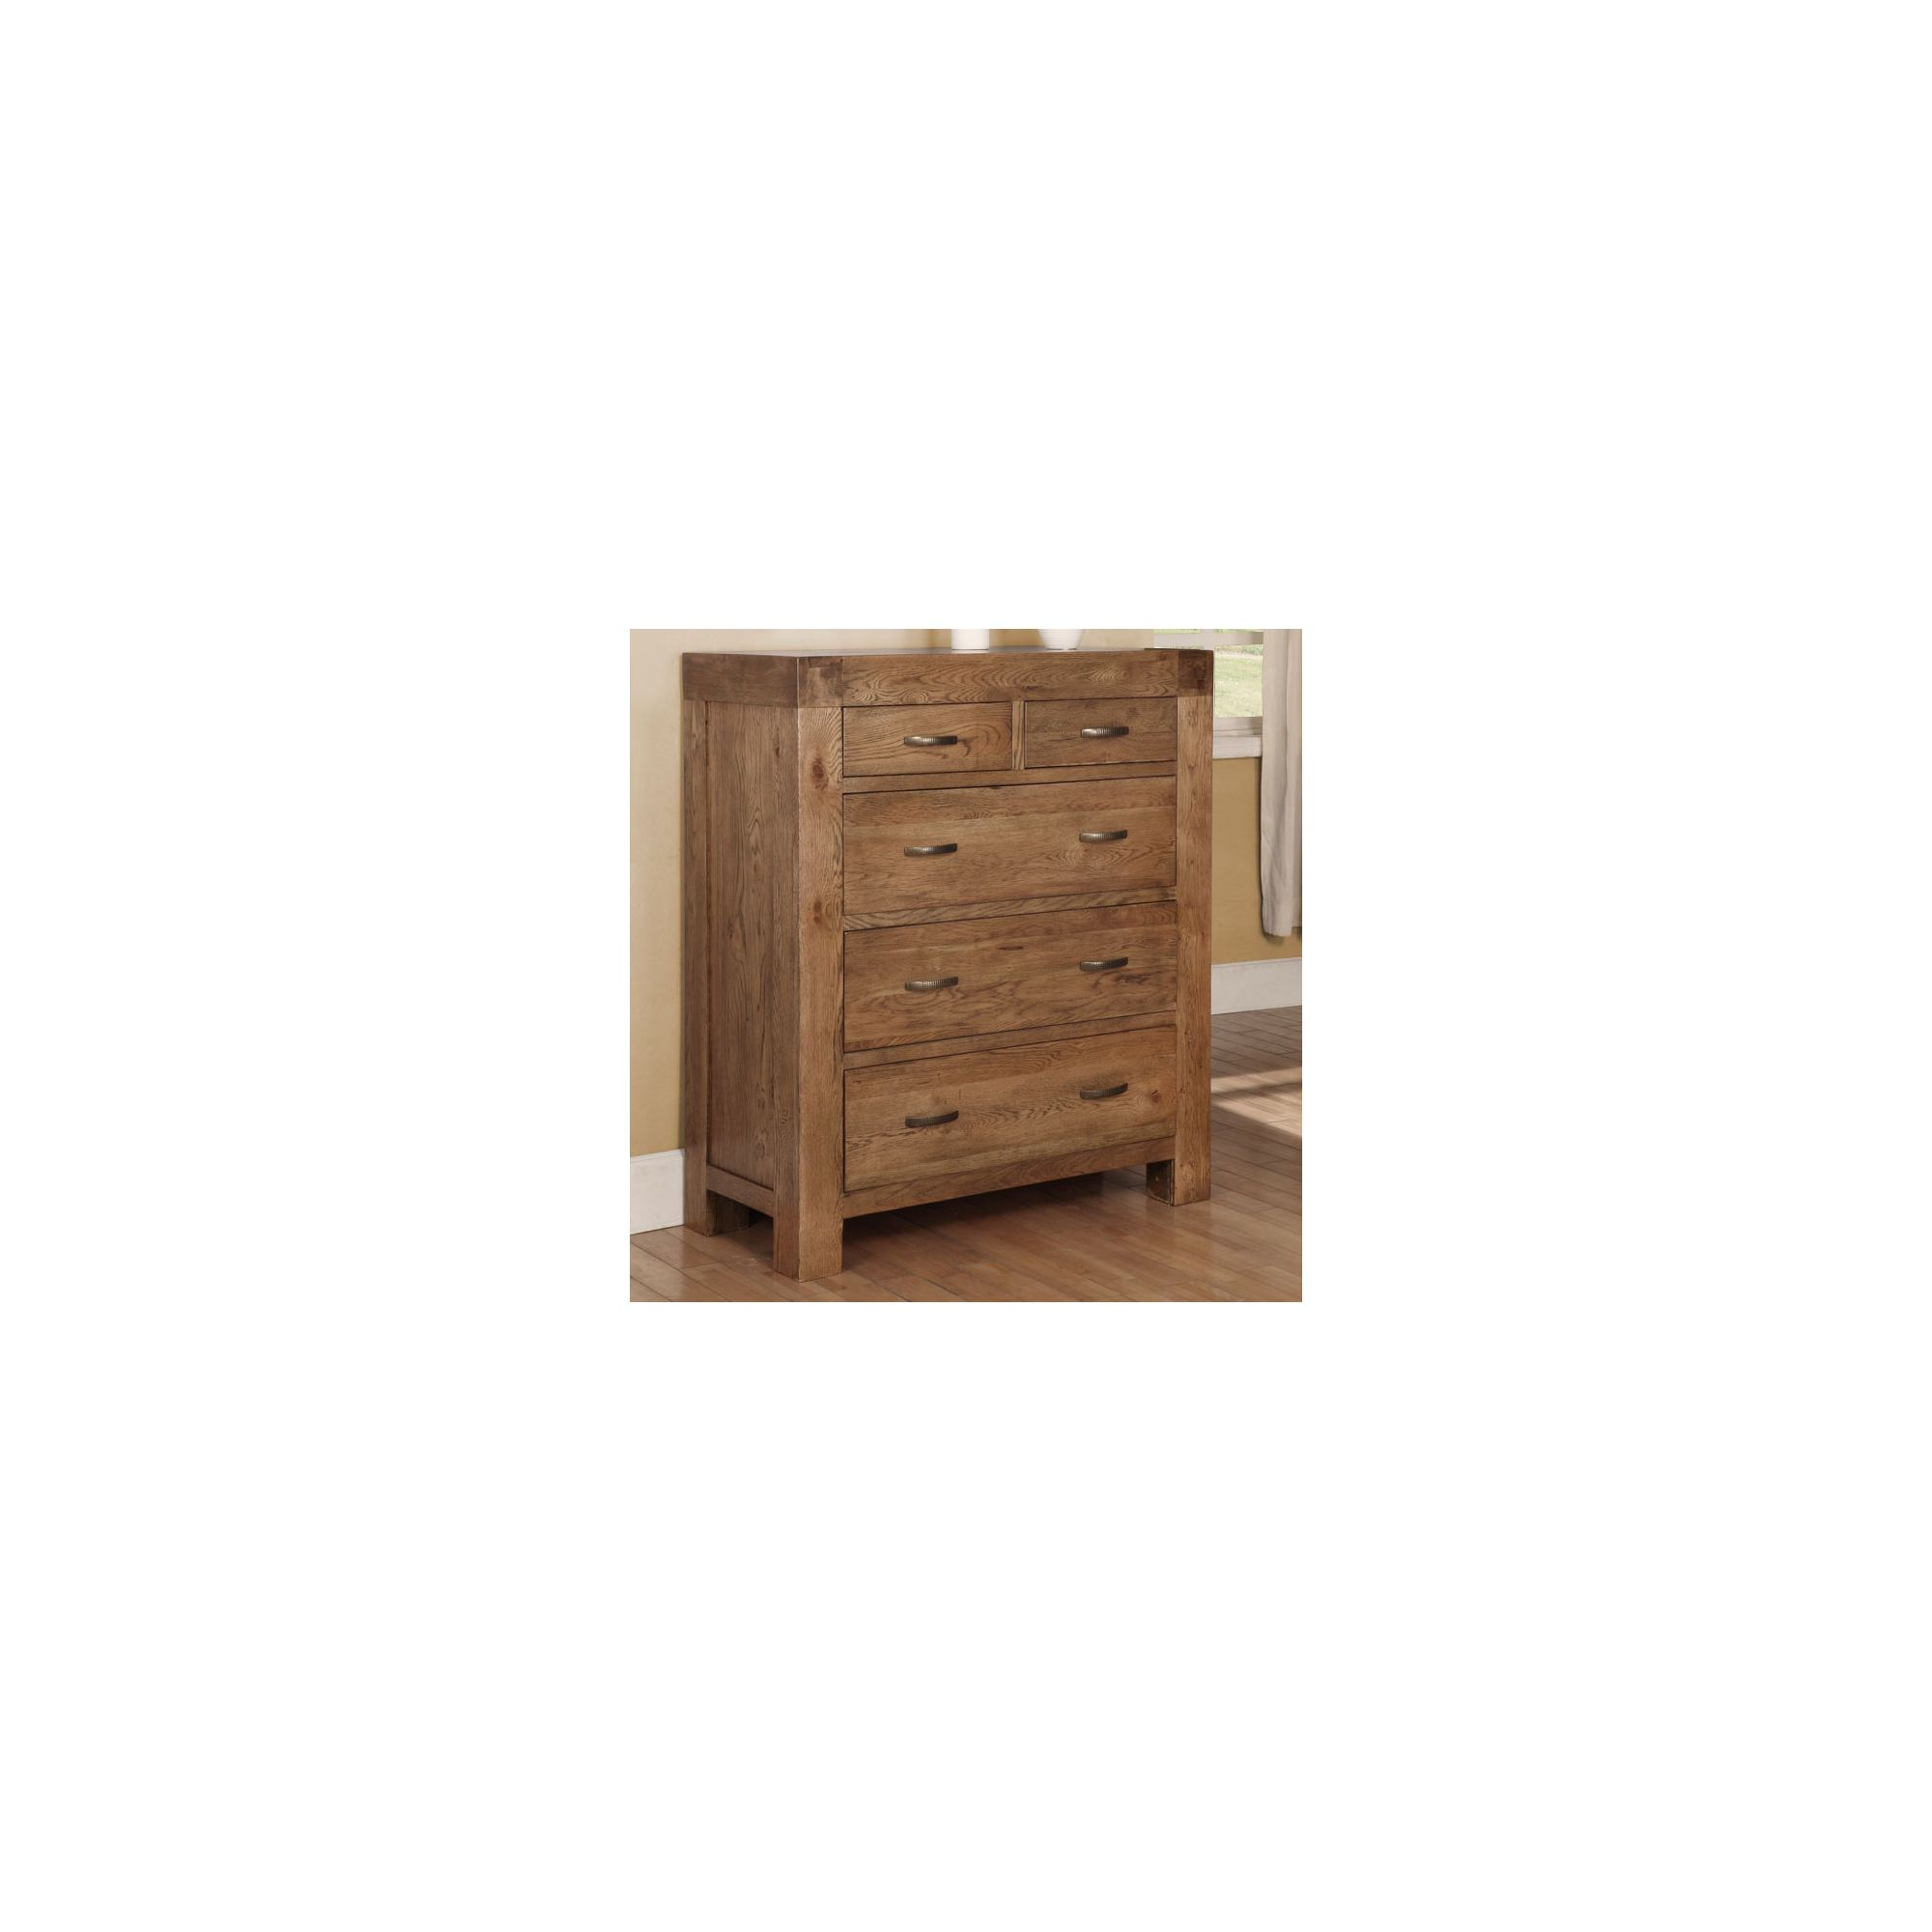 Hawkshead Santana Two Over Three Chest in Rich Patina at Tesco Direct